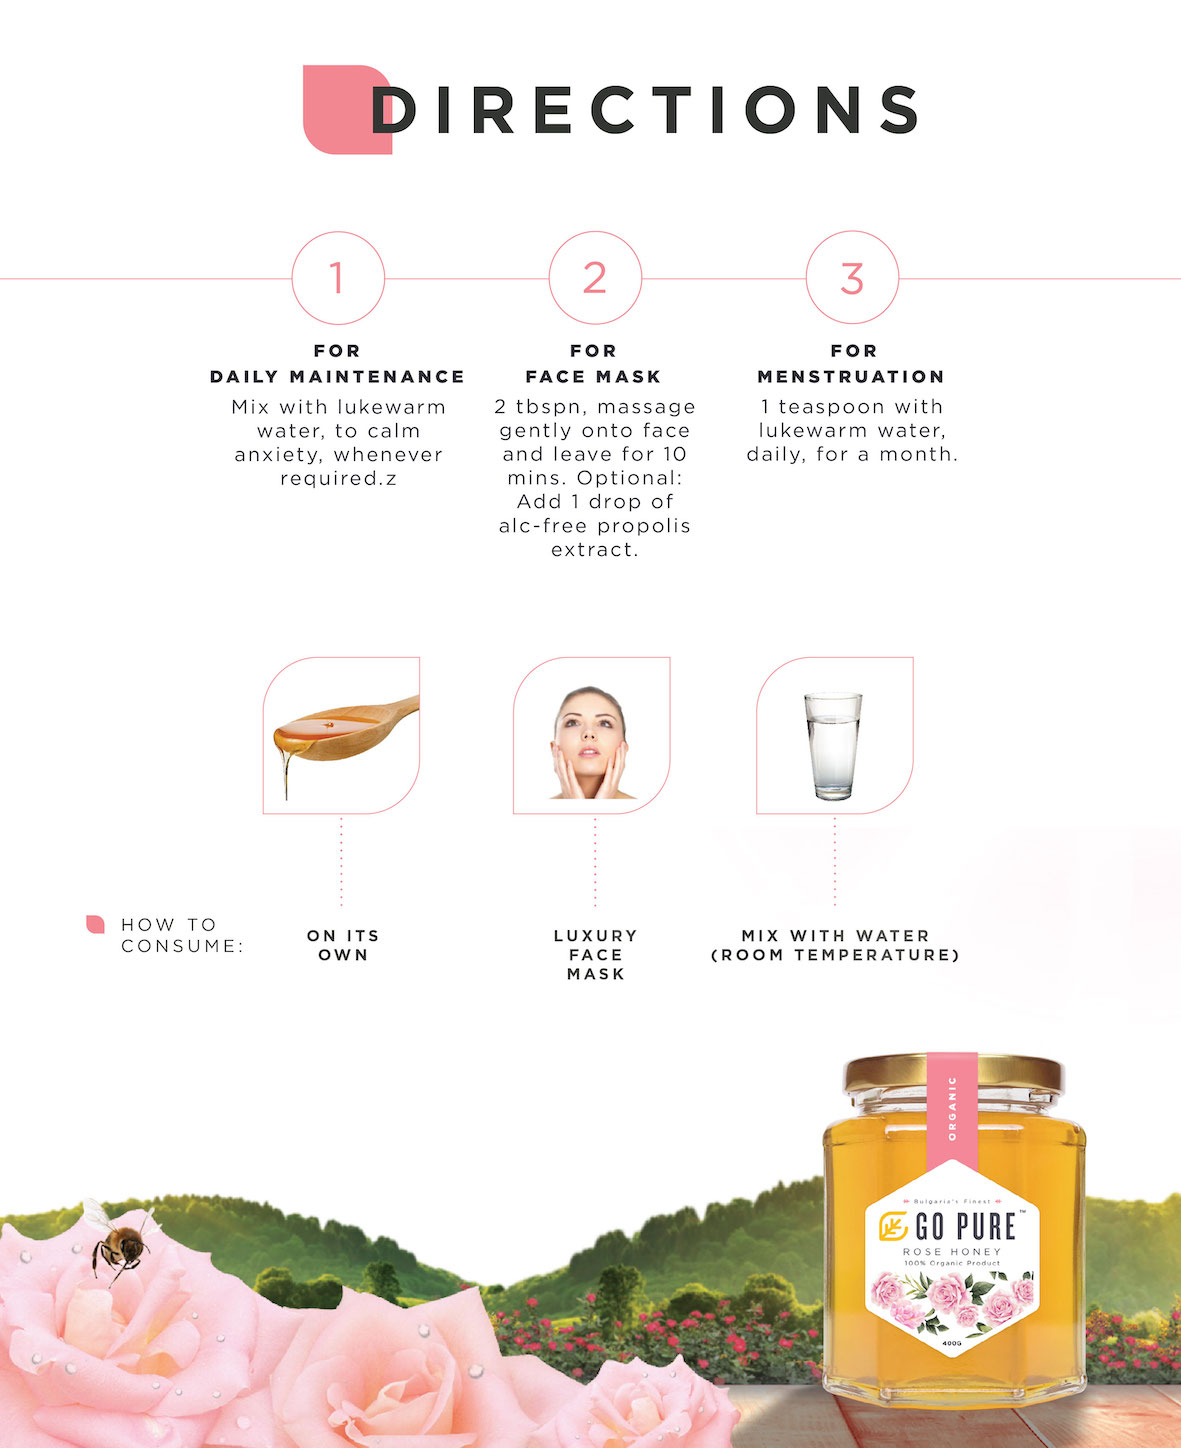 Directions to Consume Rose Honey